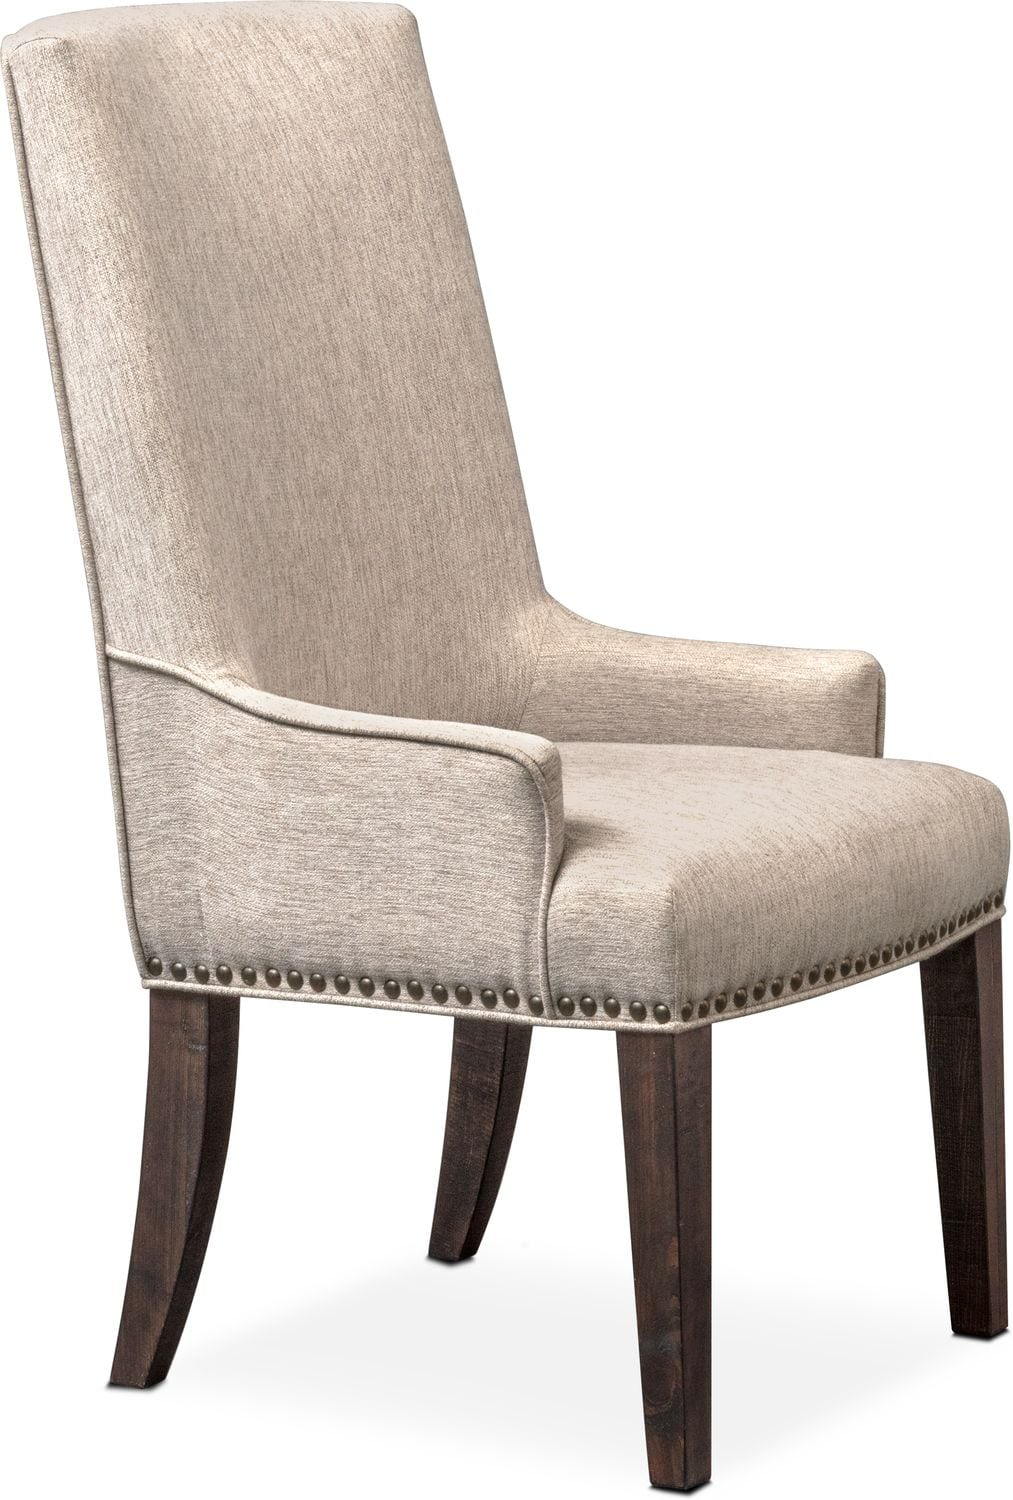 Charthouse Host Chair   Charcoal